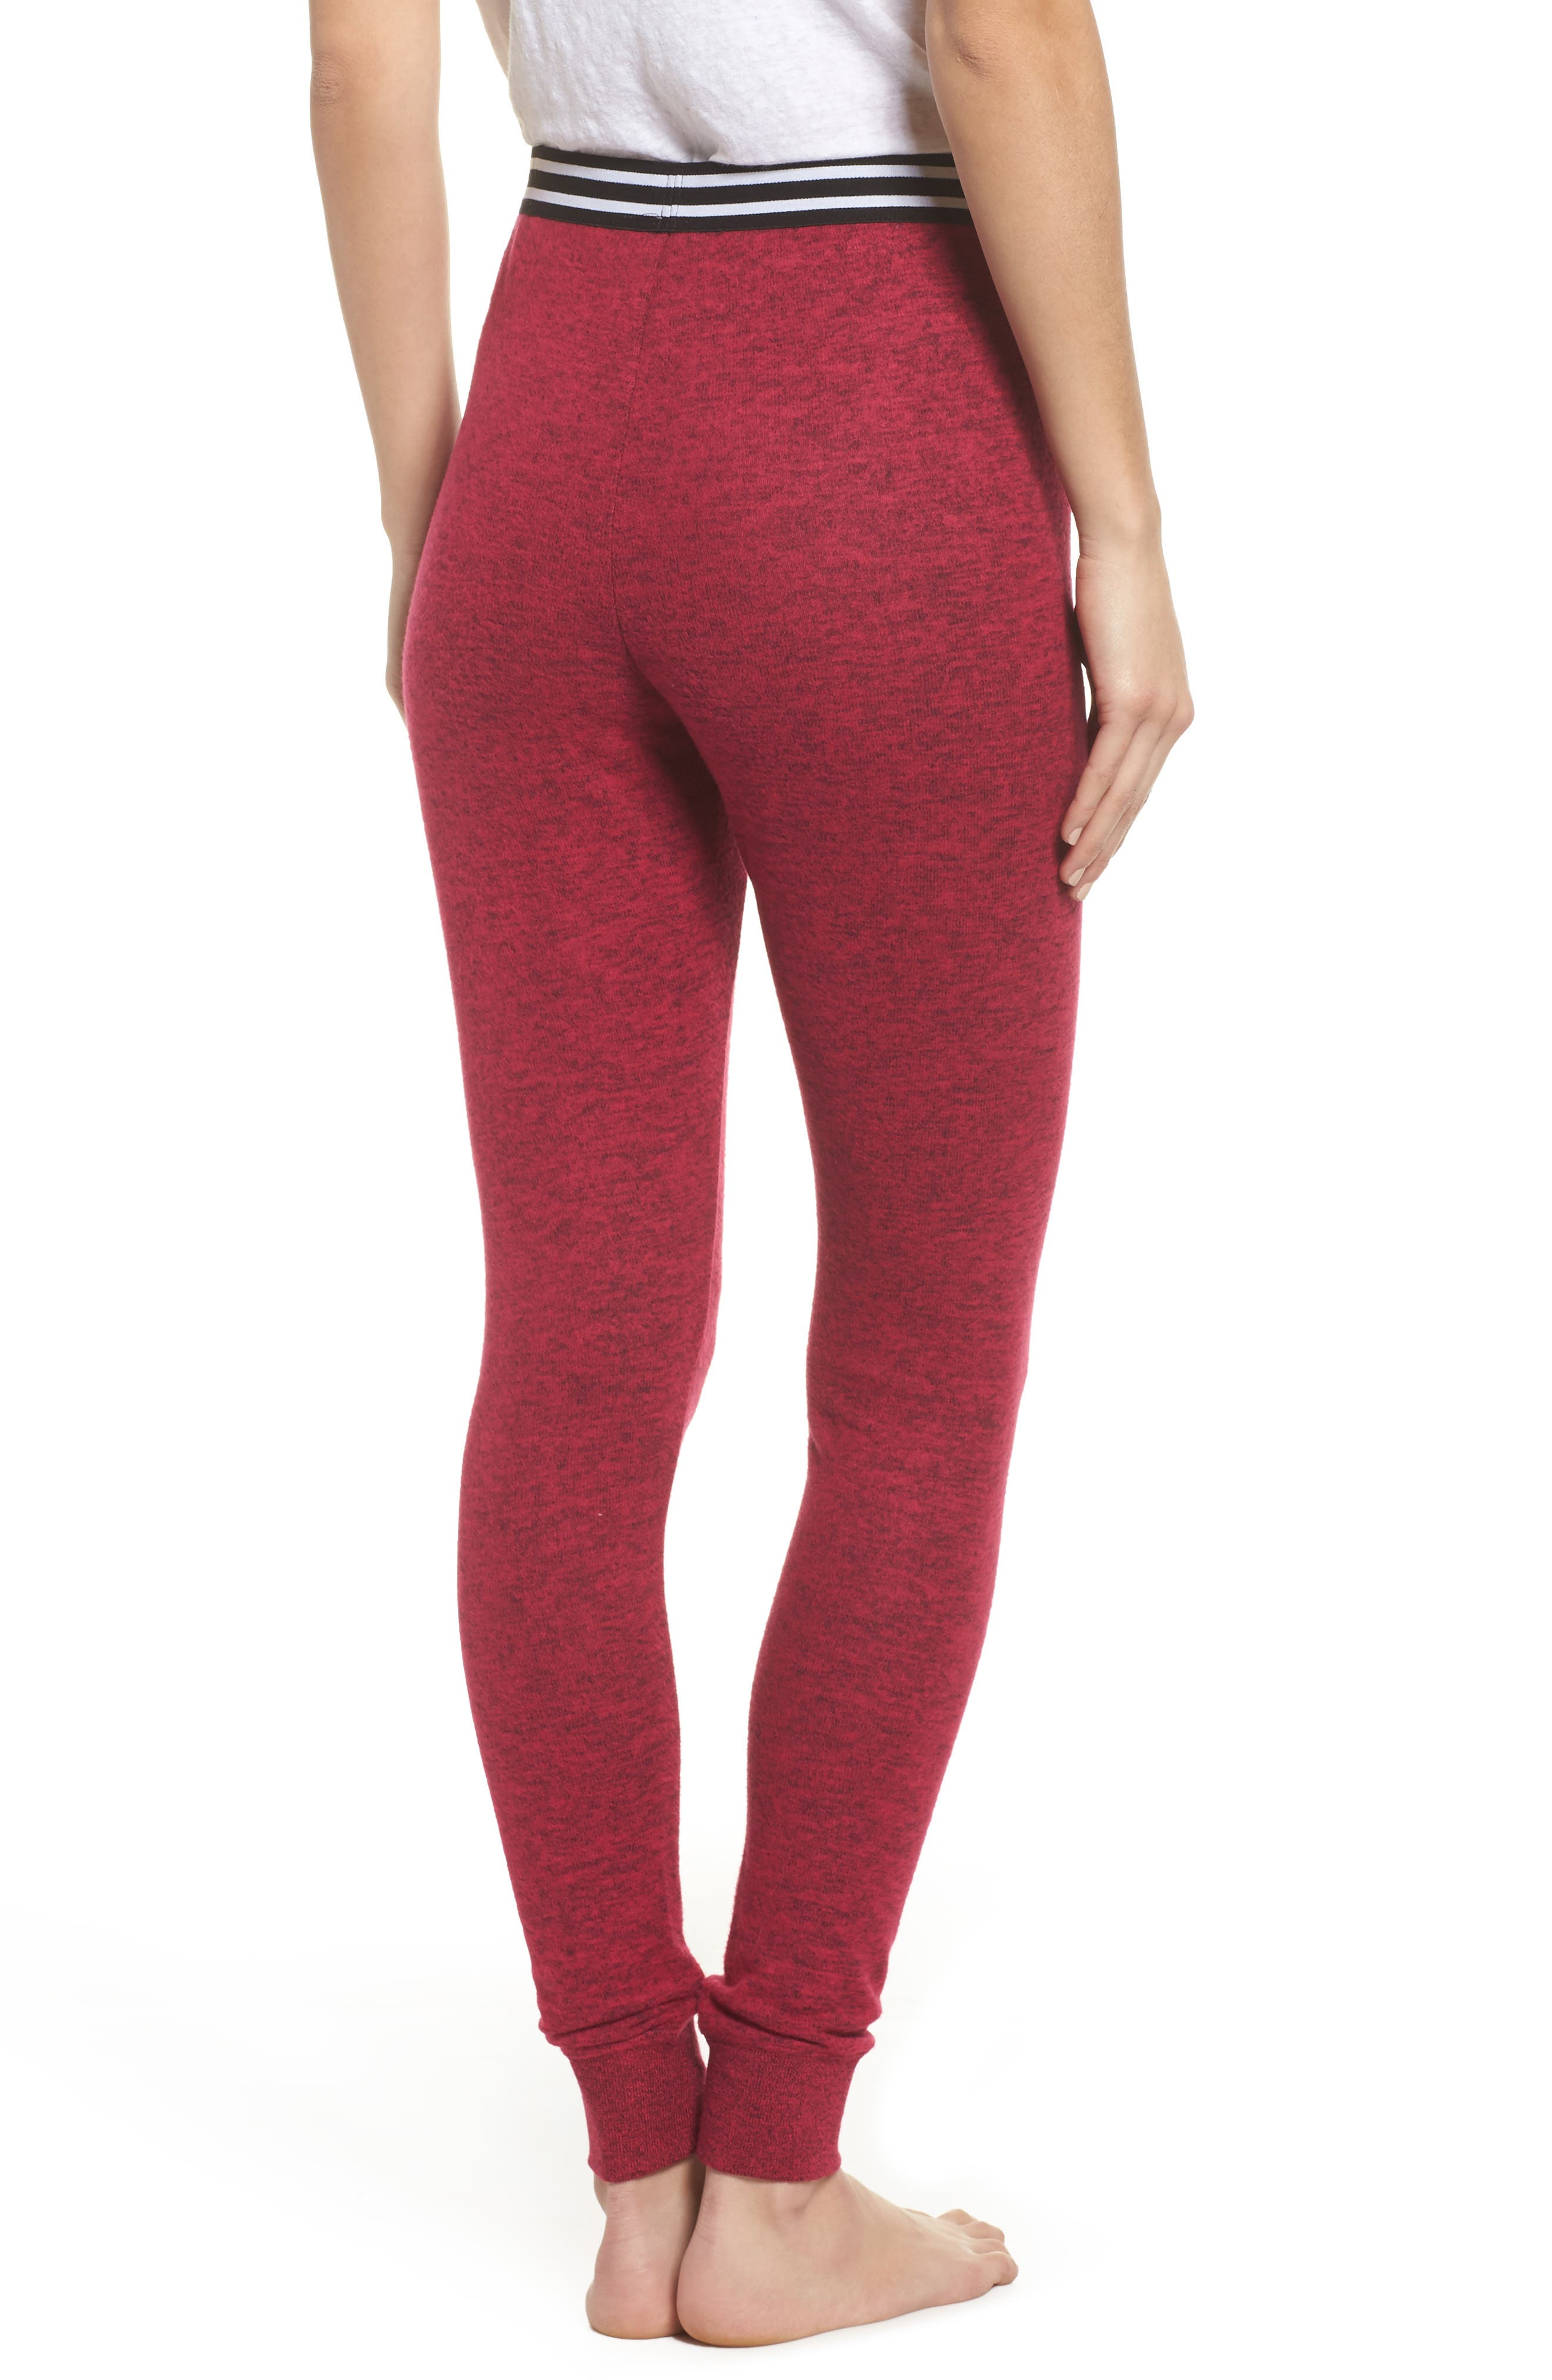 Cuddle Up Lounge Leggings,                             Alternate thumbnail 2, color,                             Pink Vivacious Marl